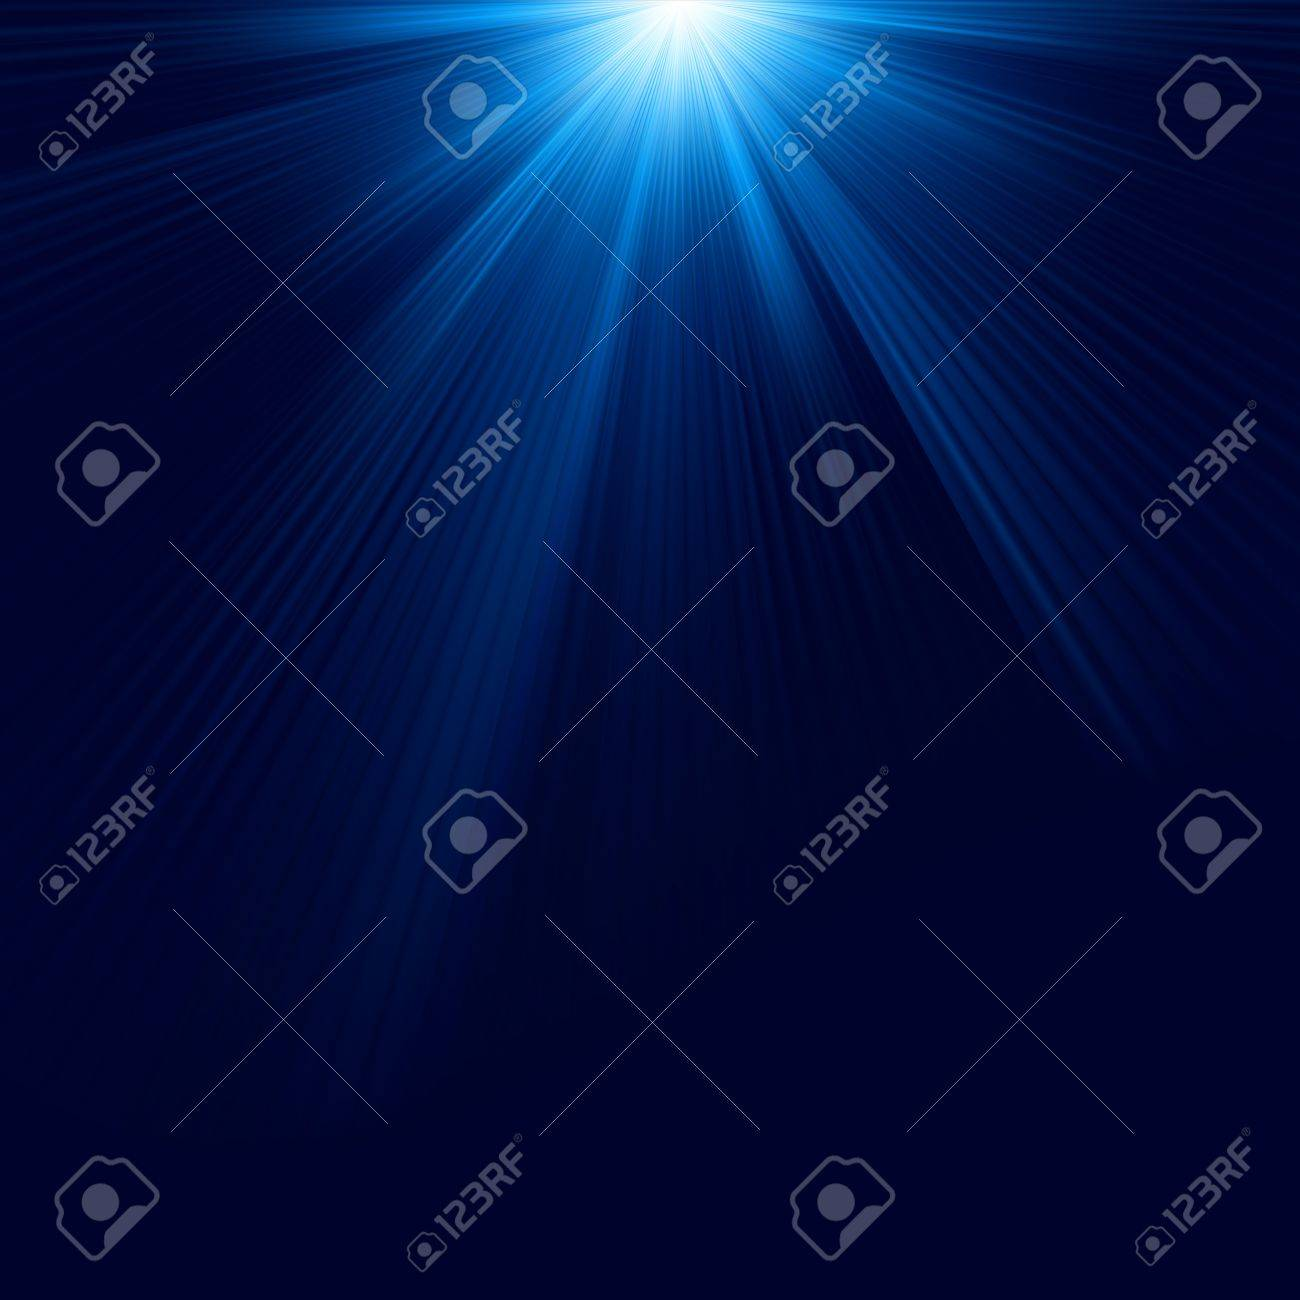 Snow and stars are falling on the background of blue luminous rays file included Stock Vector - 17273014